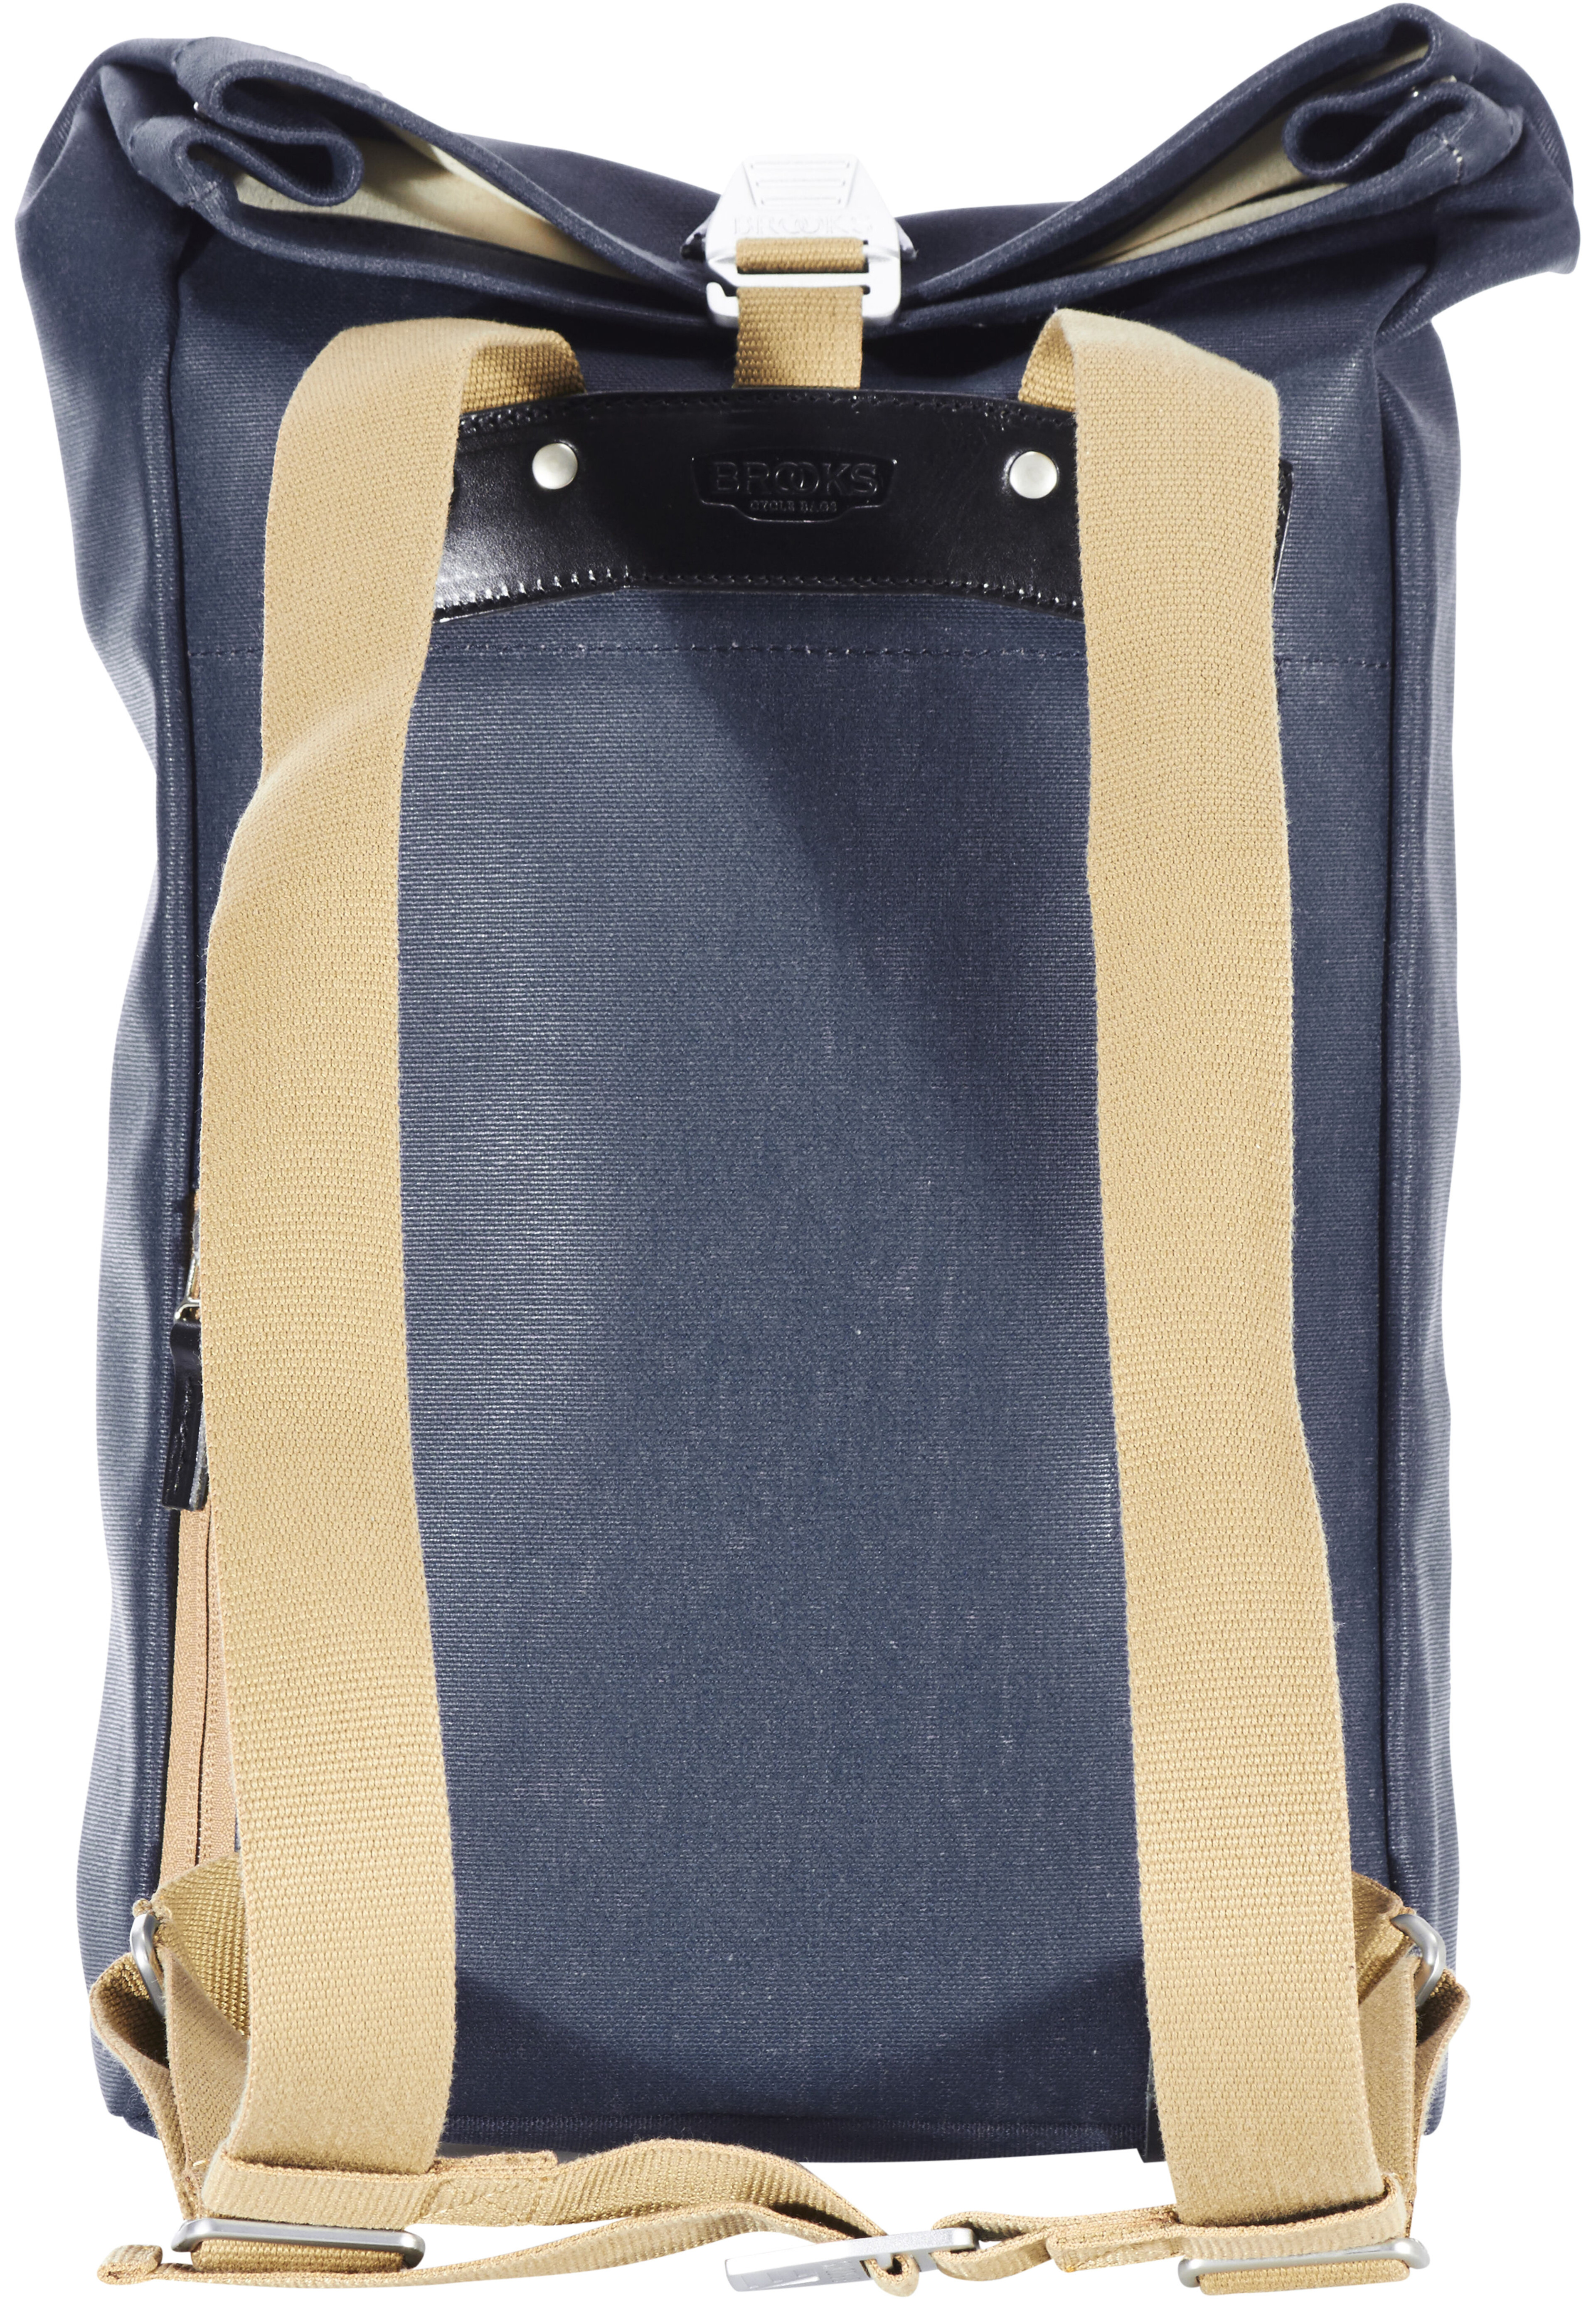 b164e13c30 ▷ Brooks Pickwick Canvas Backpack Small 12l dark blue/black online ...